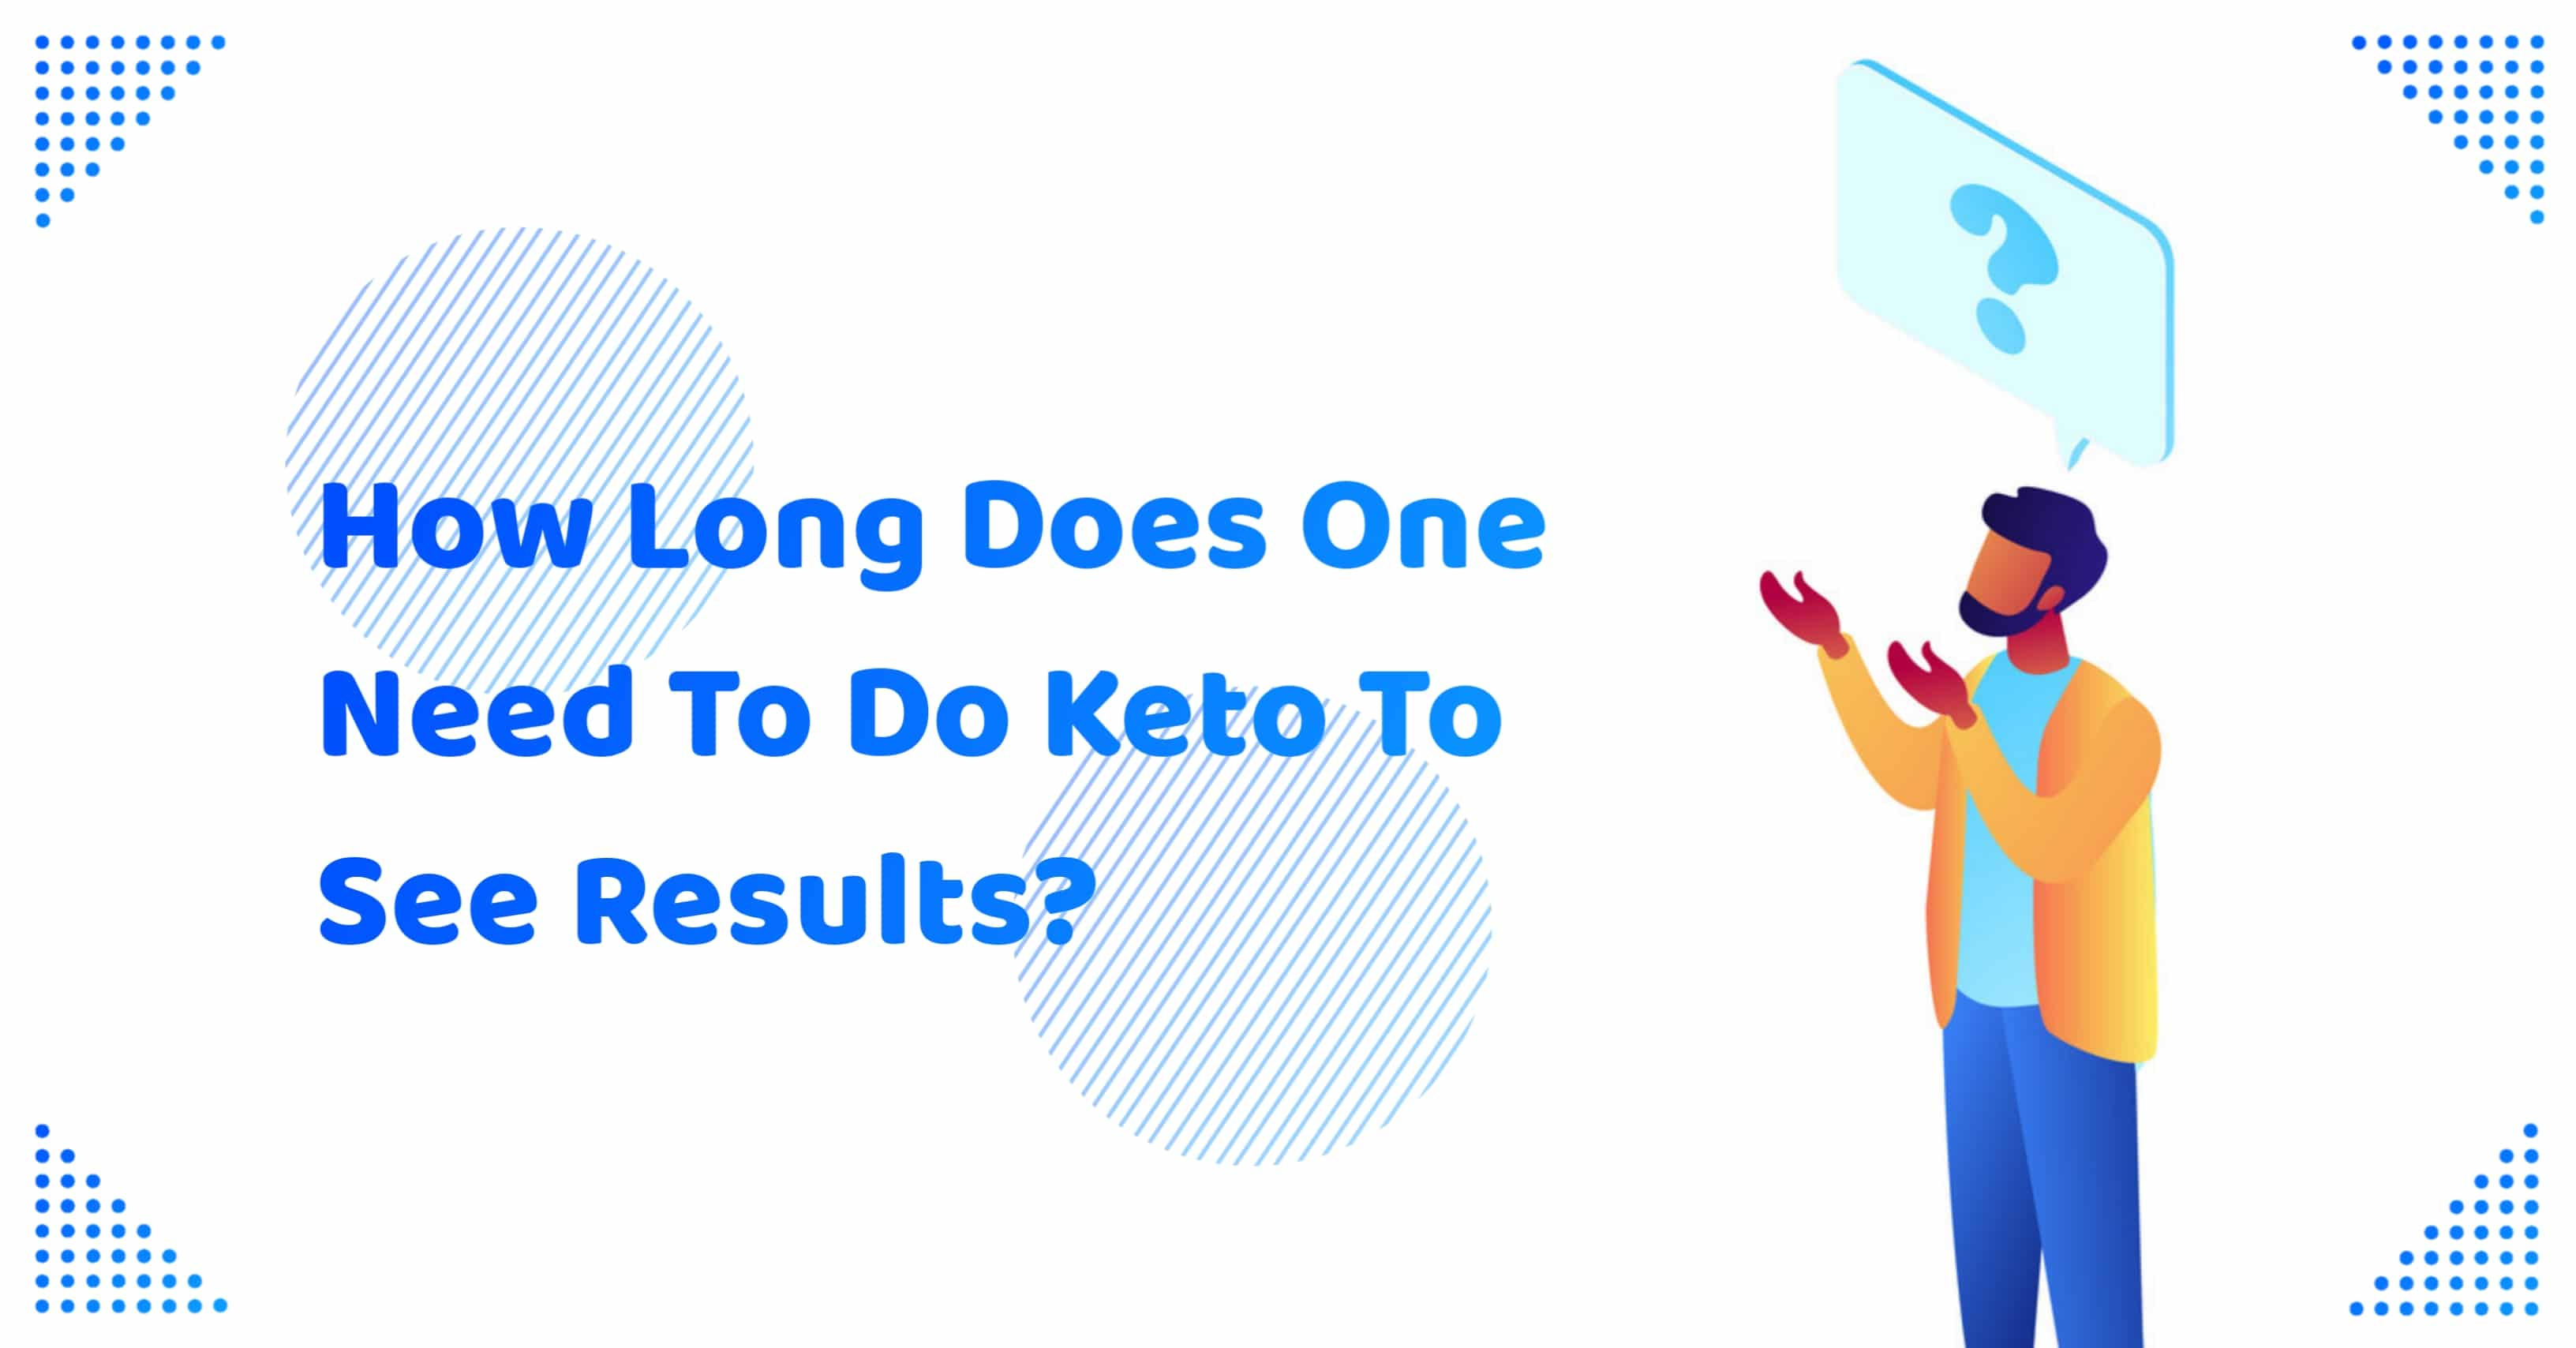 How Long Does One Need To Do Keto To See Results?